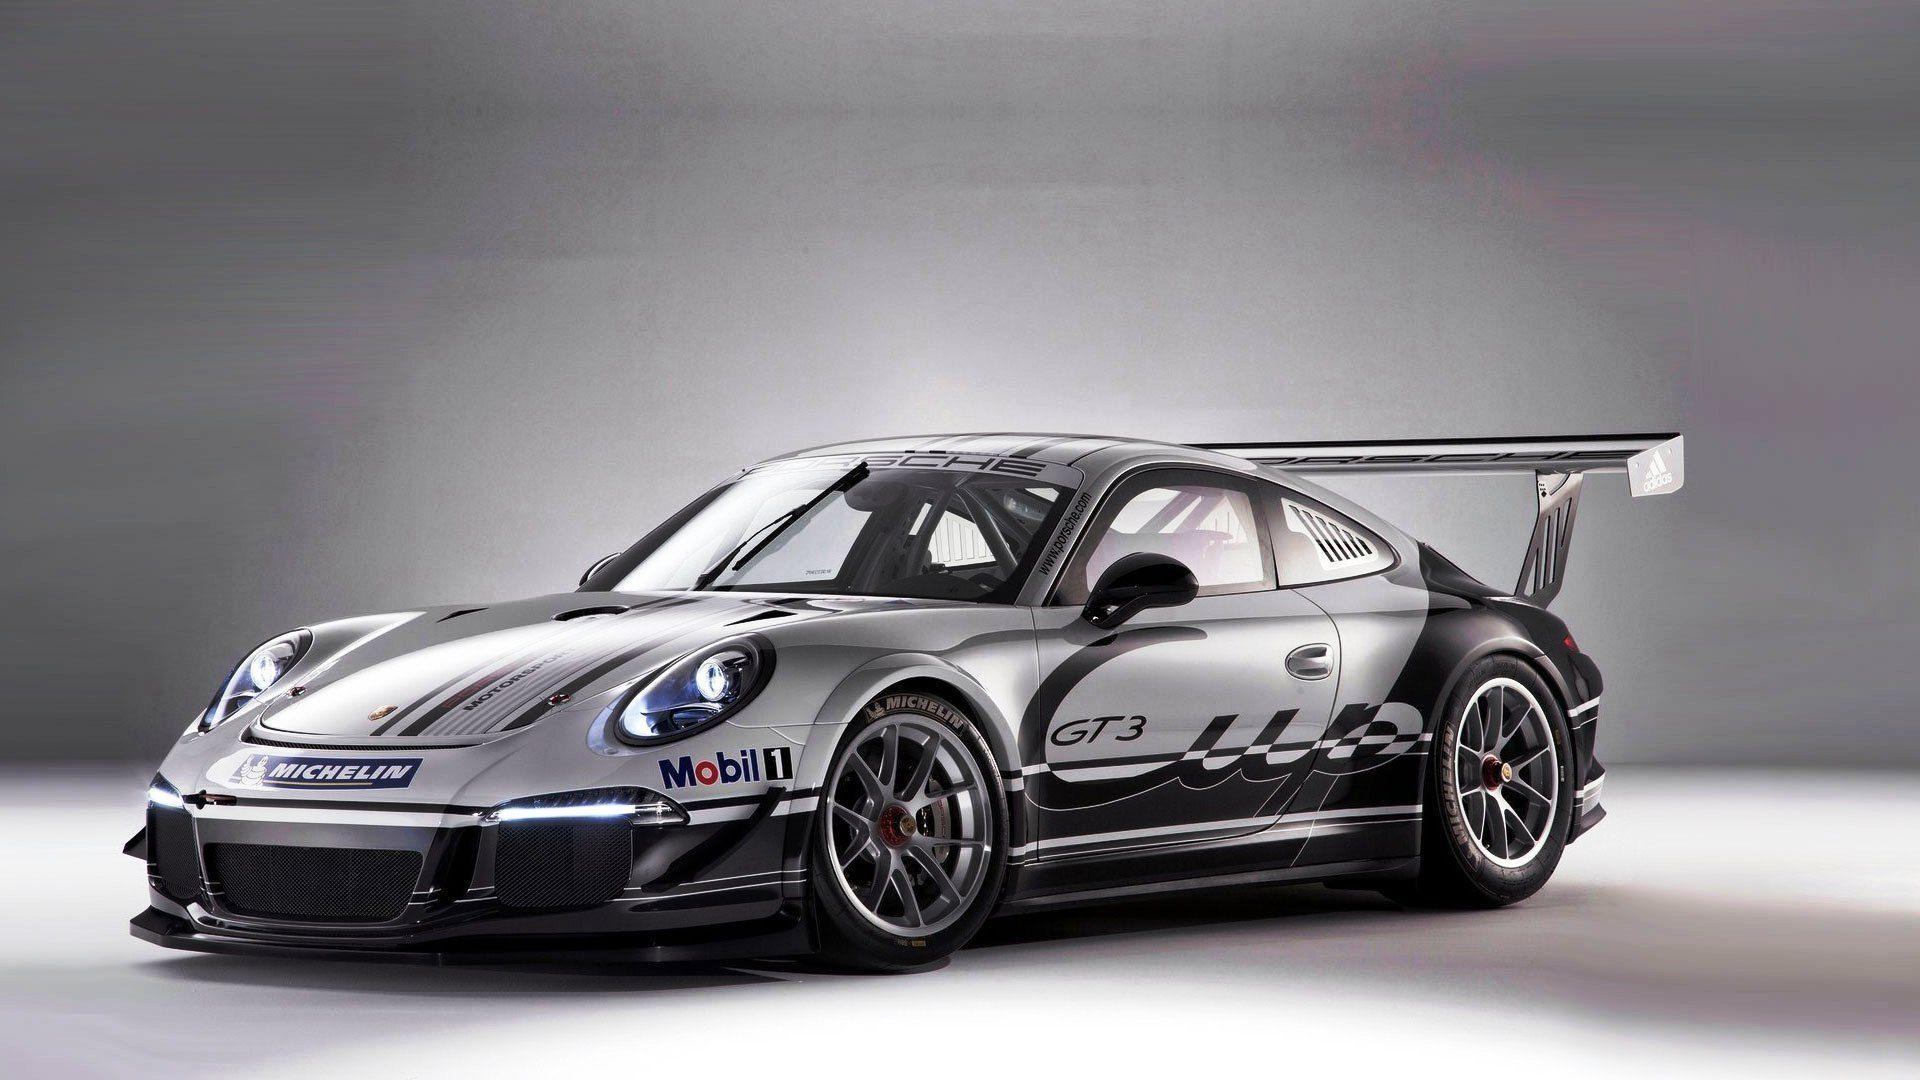 2013 Porsche 911 GT3 Cup Wallpaper - Freak Wheel